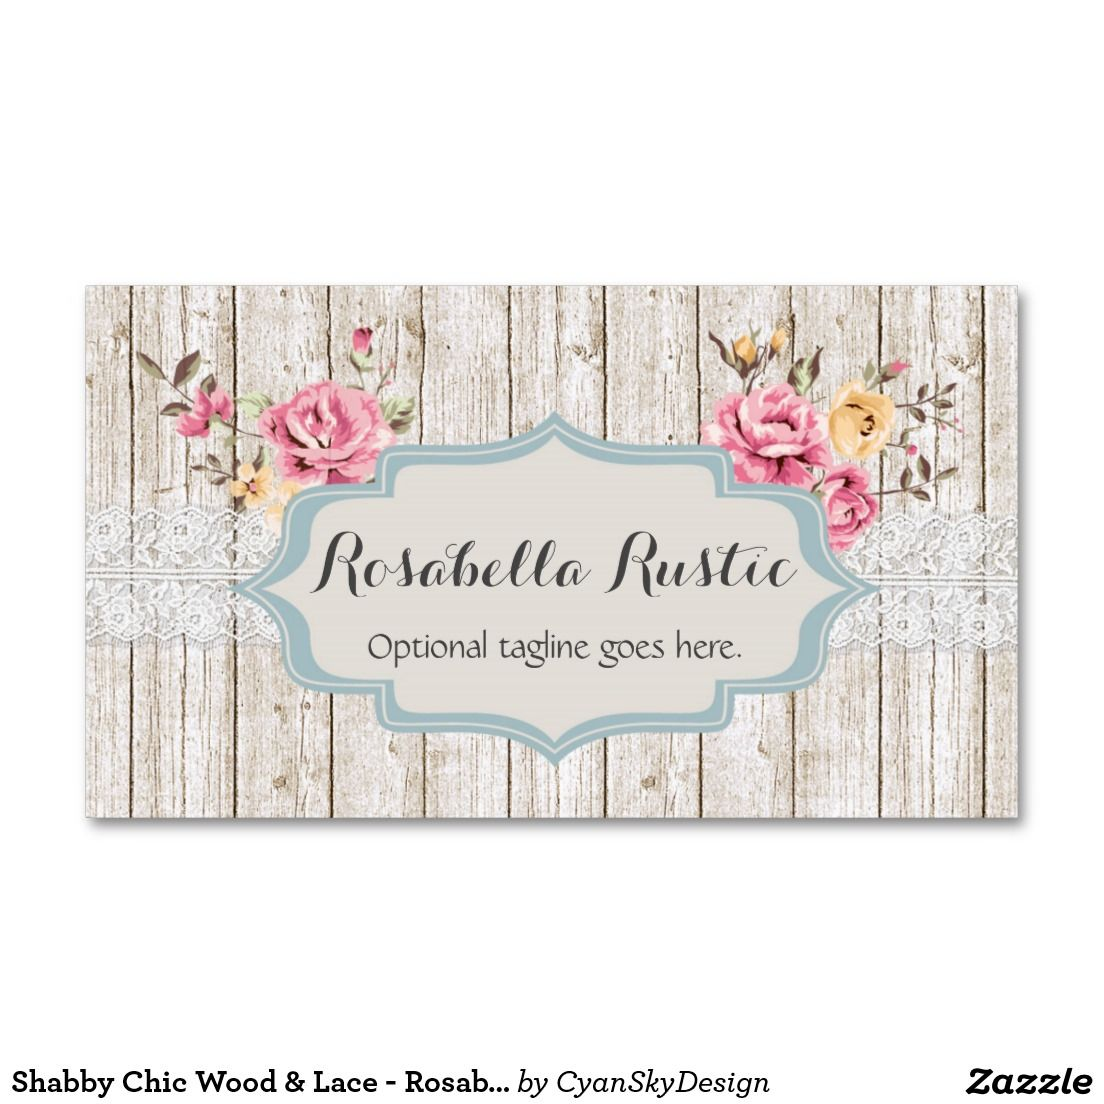 Shabby Chic Floral Rustic Wood Vintage Lace Business Card